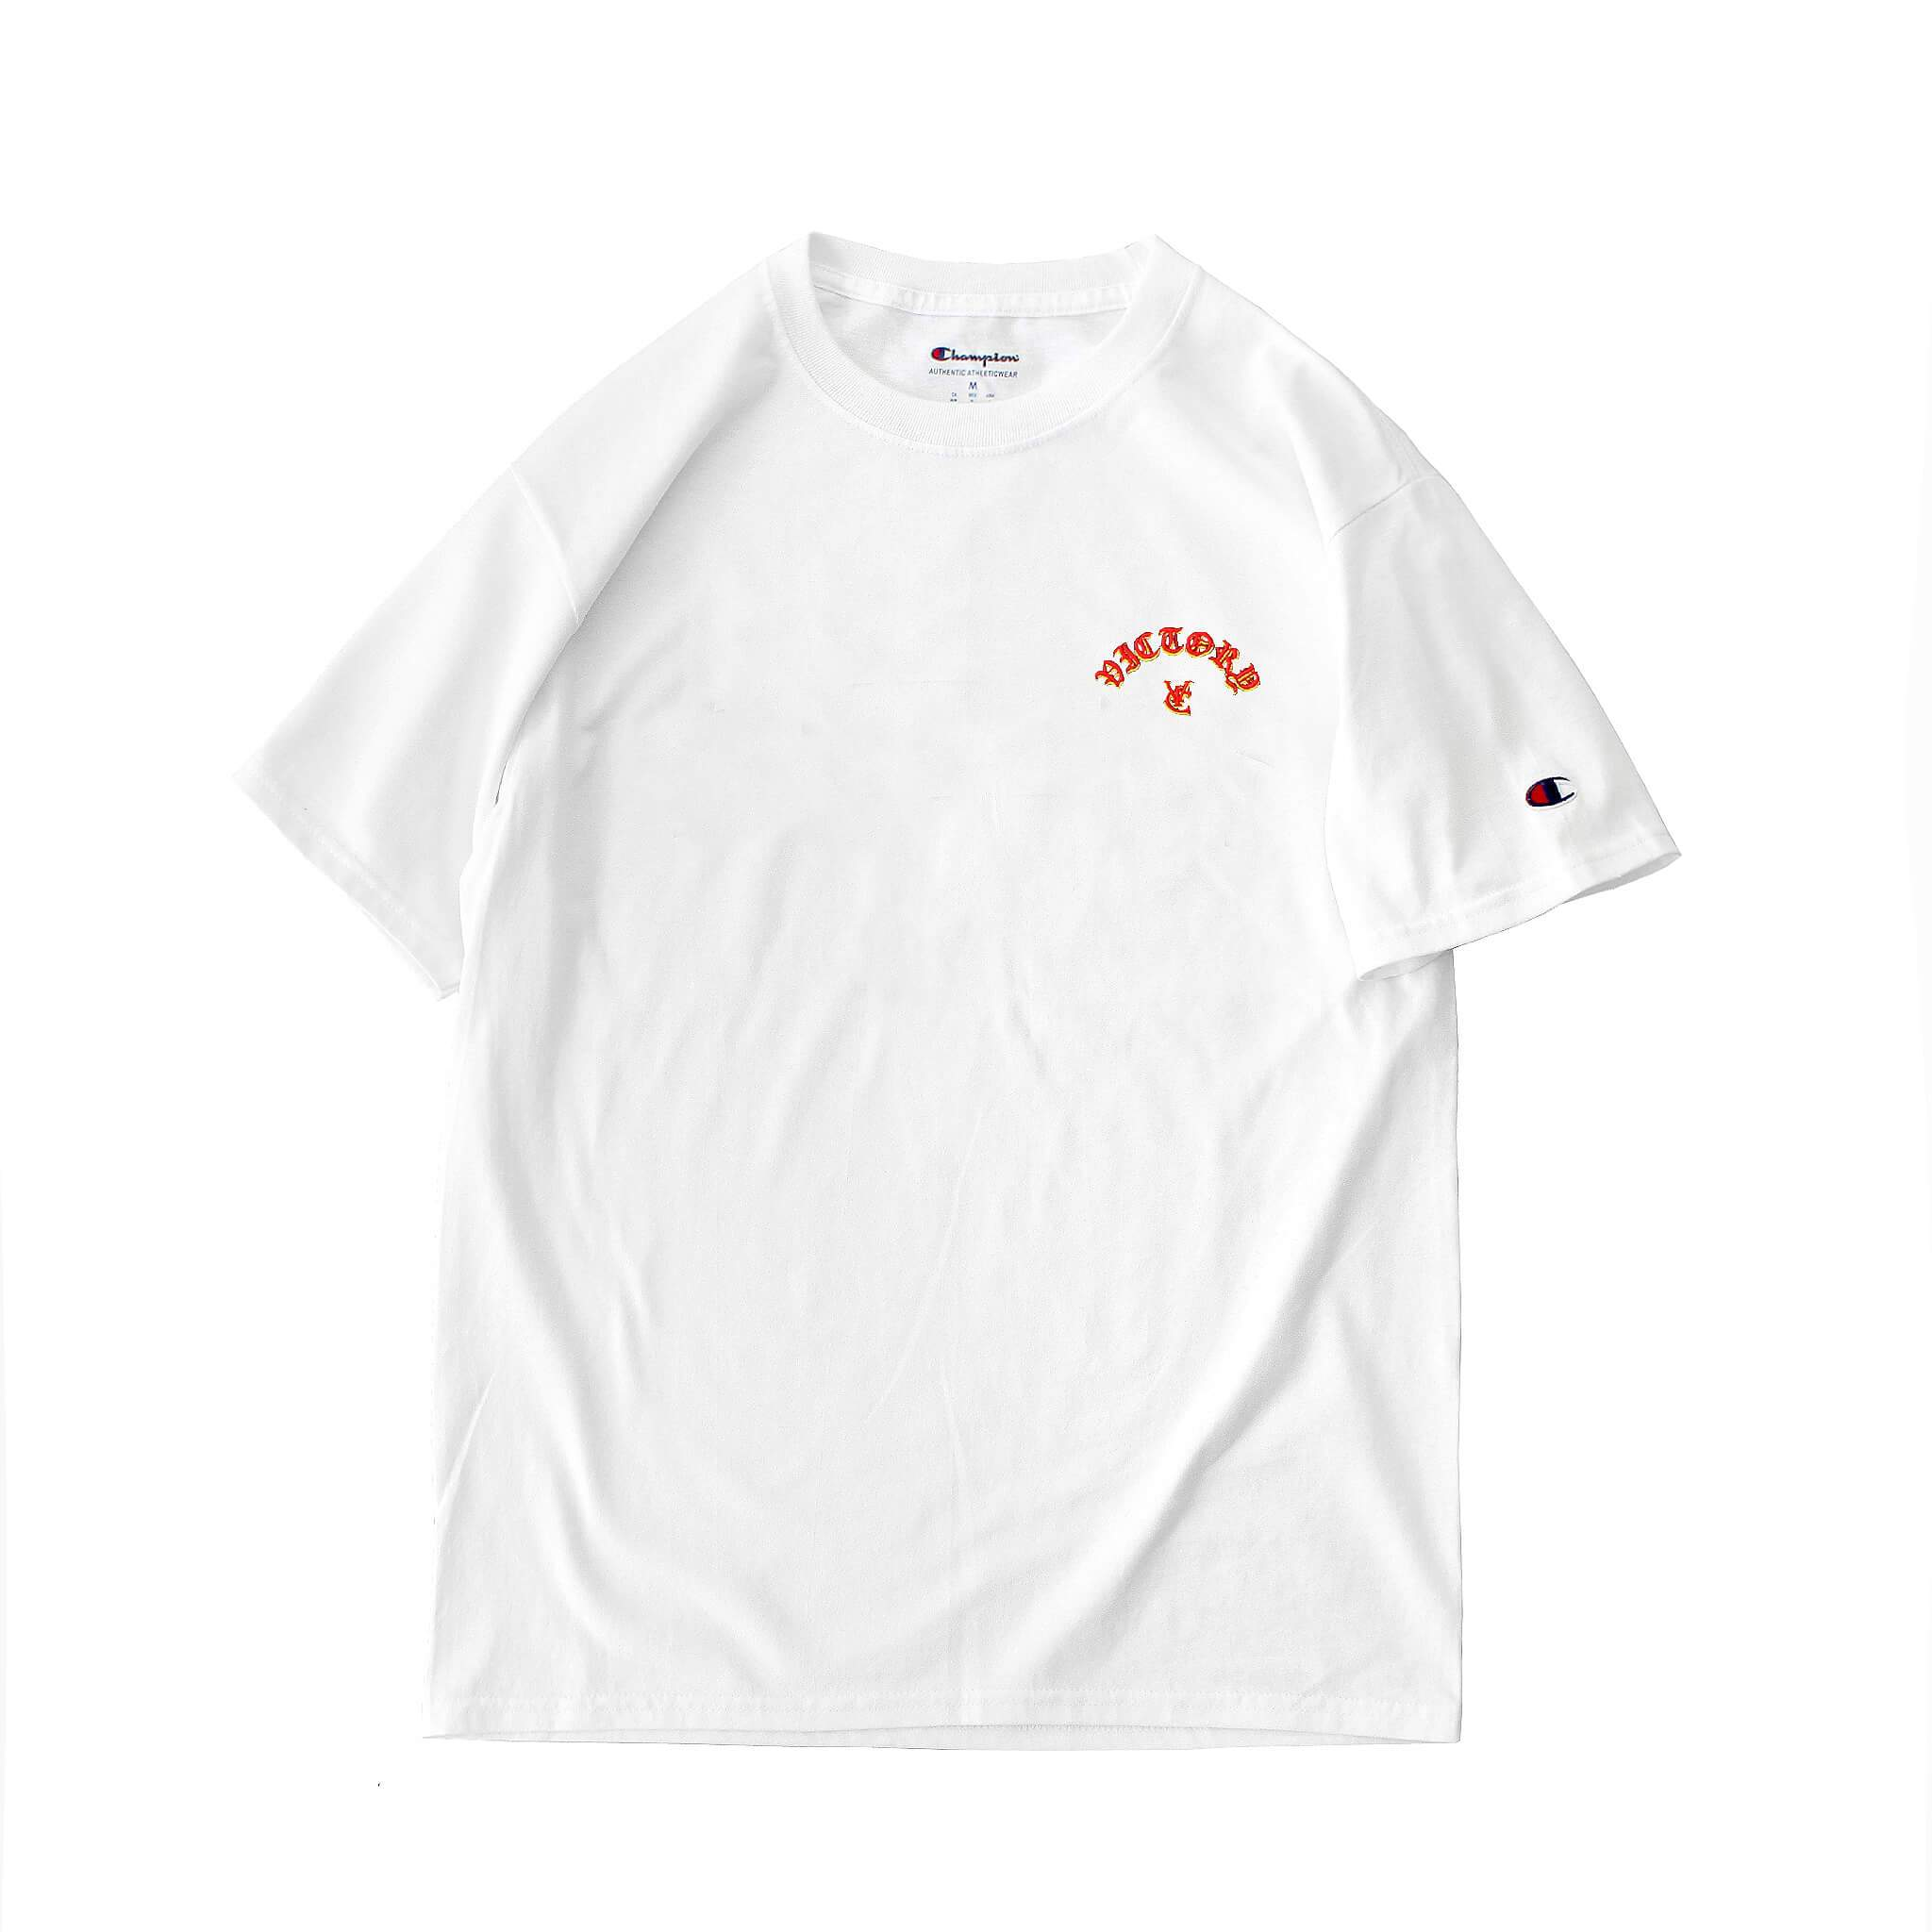 633535f8 FLAME CHAMPION® TEE - WHITE – VIC APPAREL